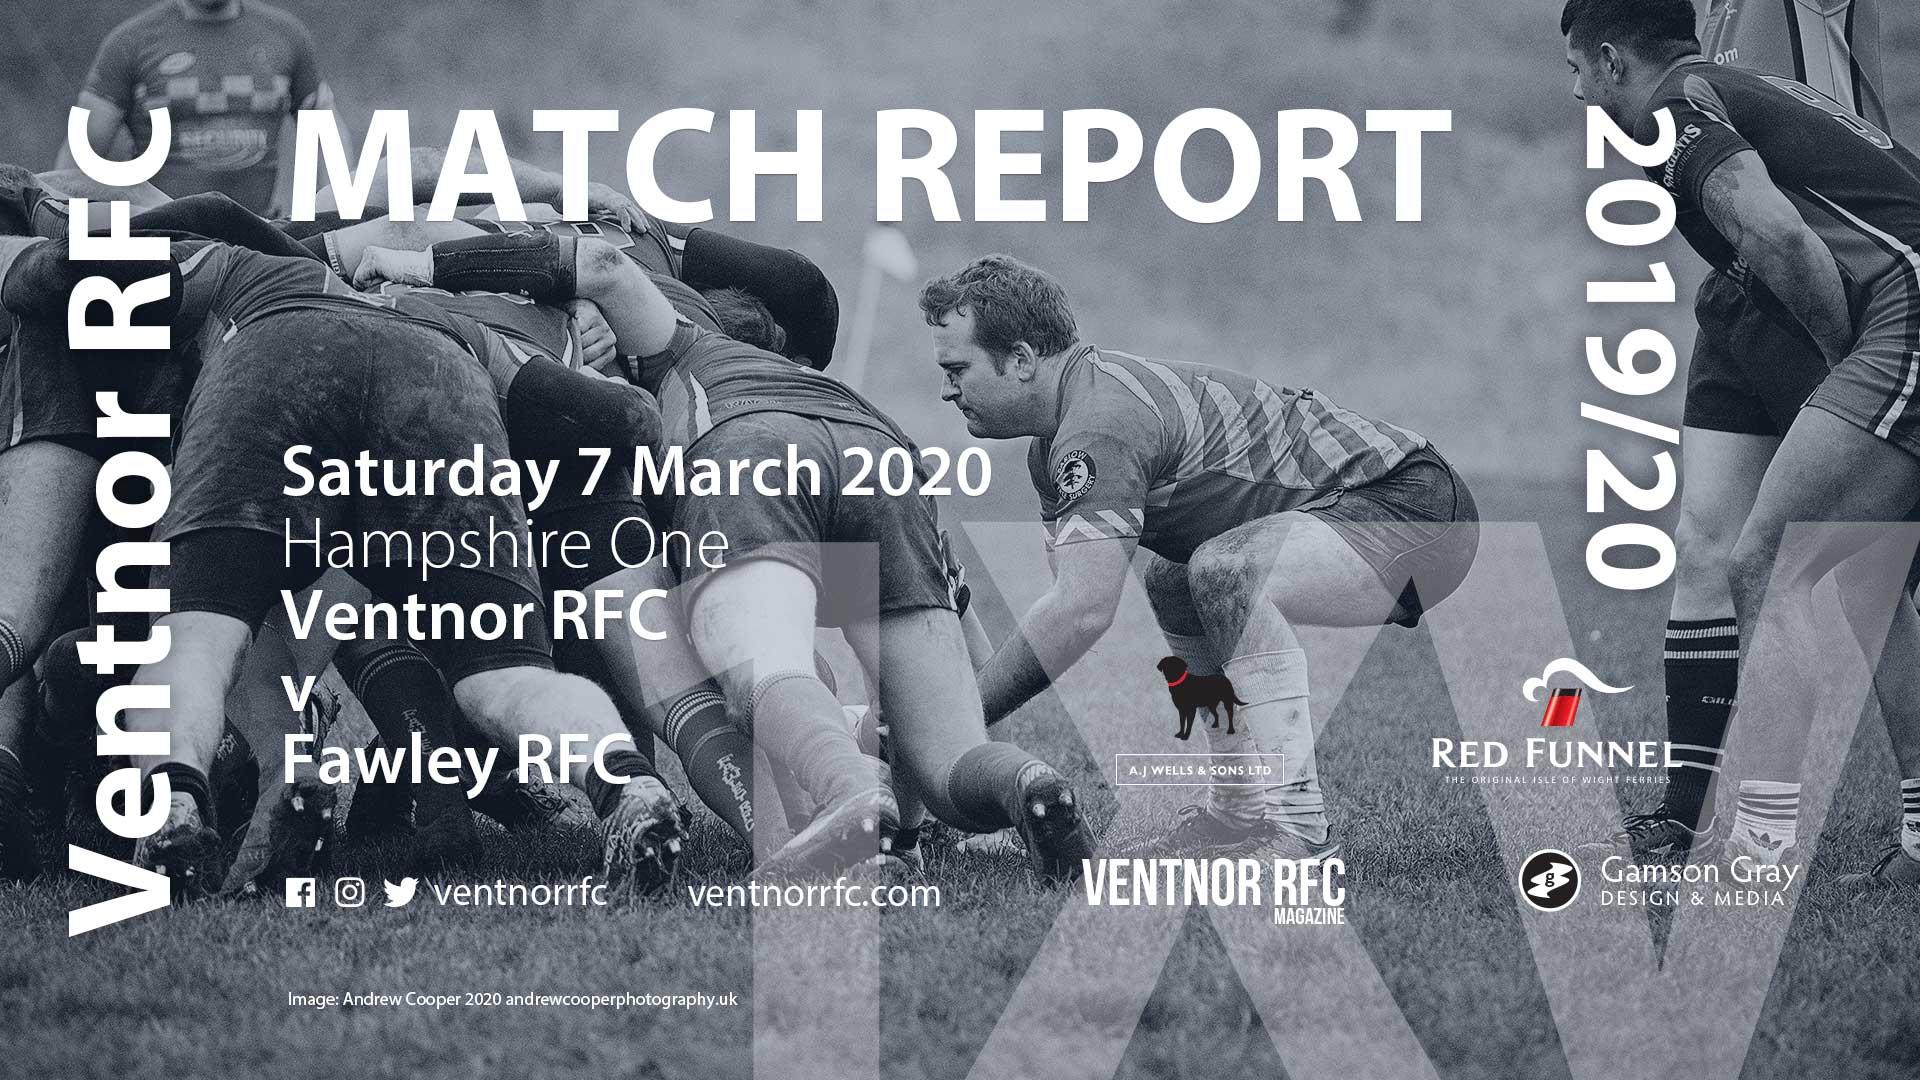 Ventnor RFC 1XV 34-5 Fawley RFC, 7 March 2020